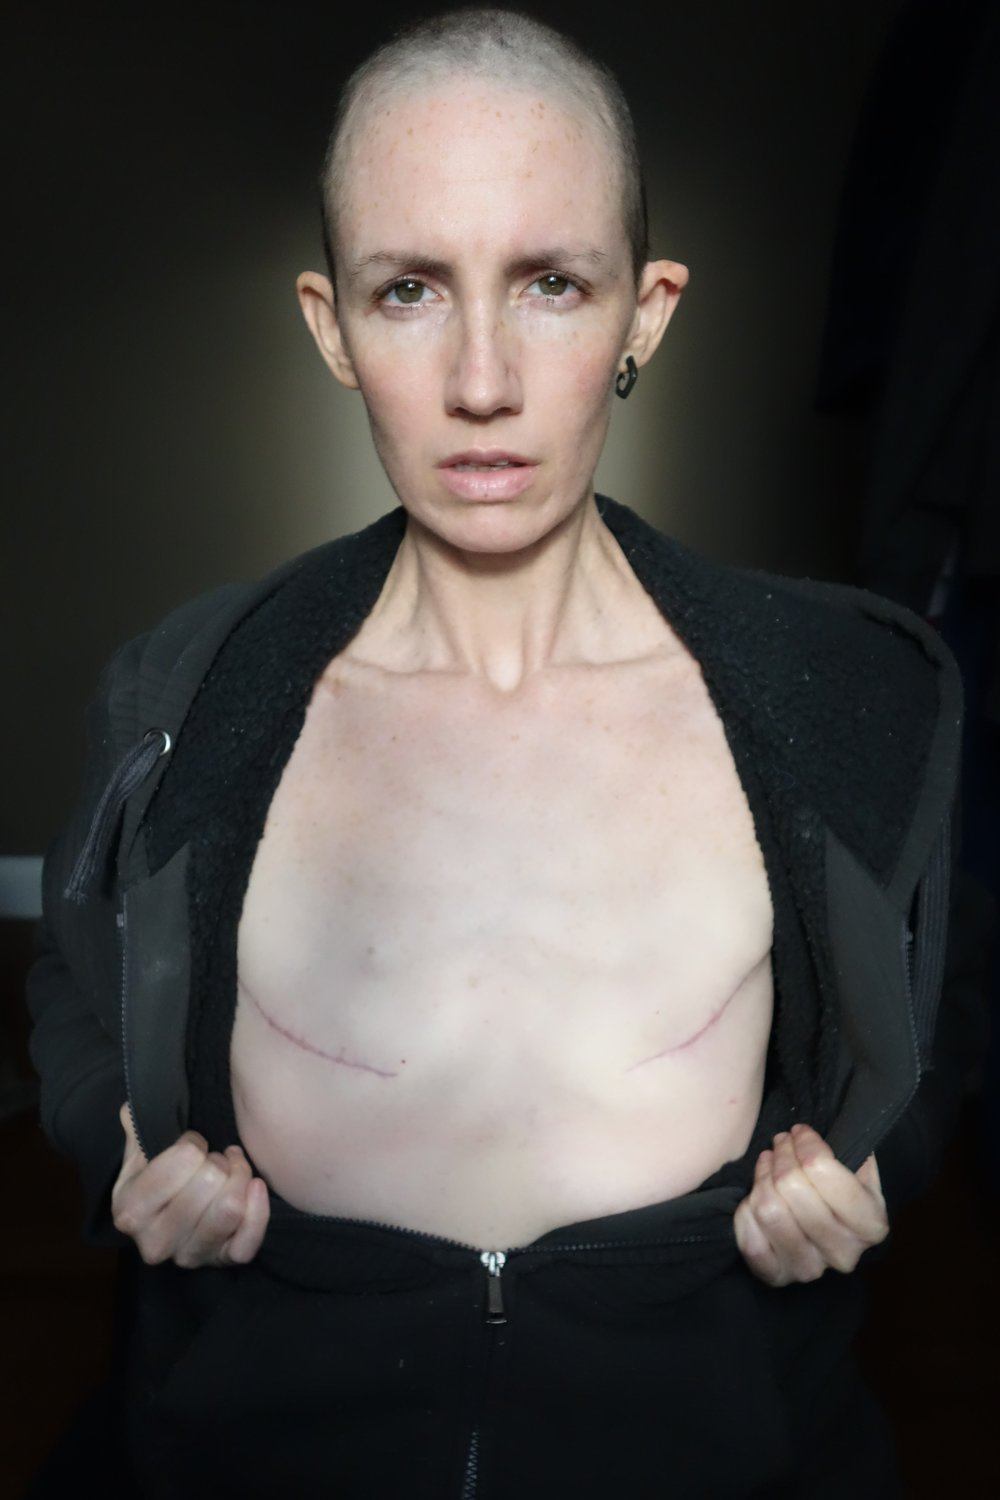 The double mastectomy was purely an aesthetic decision. I did not want reconstruction due to the increased risk of complication, nor did I want to walk around with a single breast. Symmetry was the aesthetic I desired. -